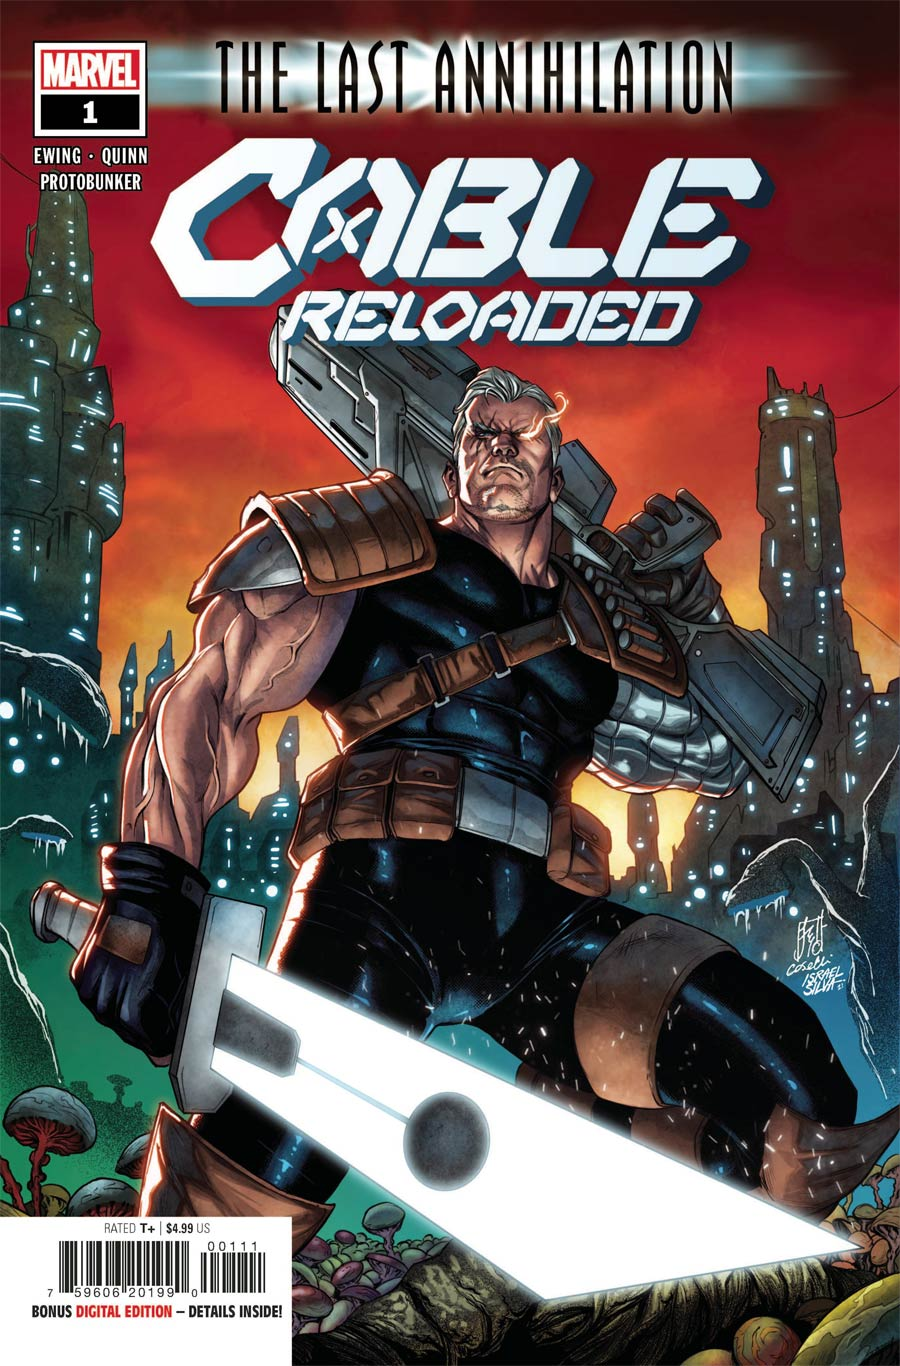 Cable Reloaded #1 (One Shot) Cover A Regular Stefano Caselli Cover (Last Annihilation Tie-In)